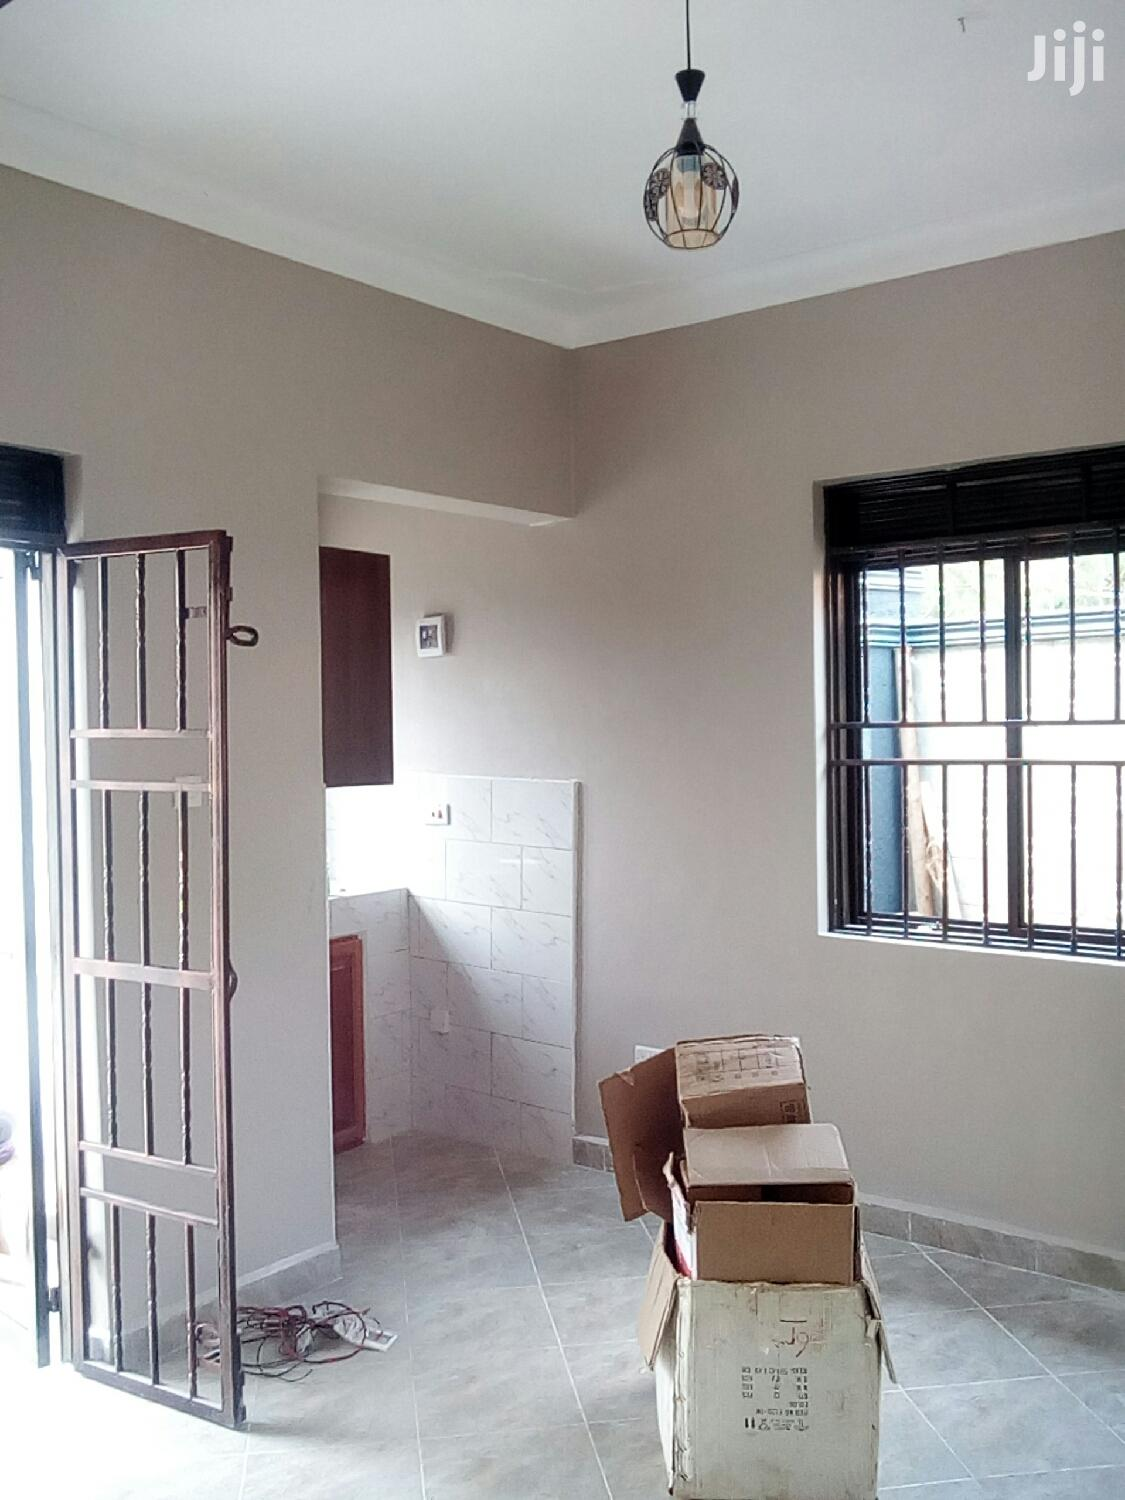 Kyanja Studio Single Room House For Rent | Houses & Apartments For Rent for sale in Kampala, Central Region, Uganda